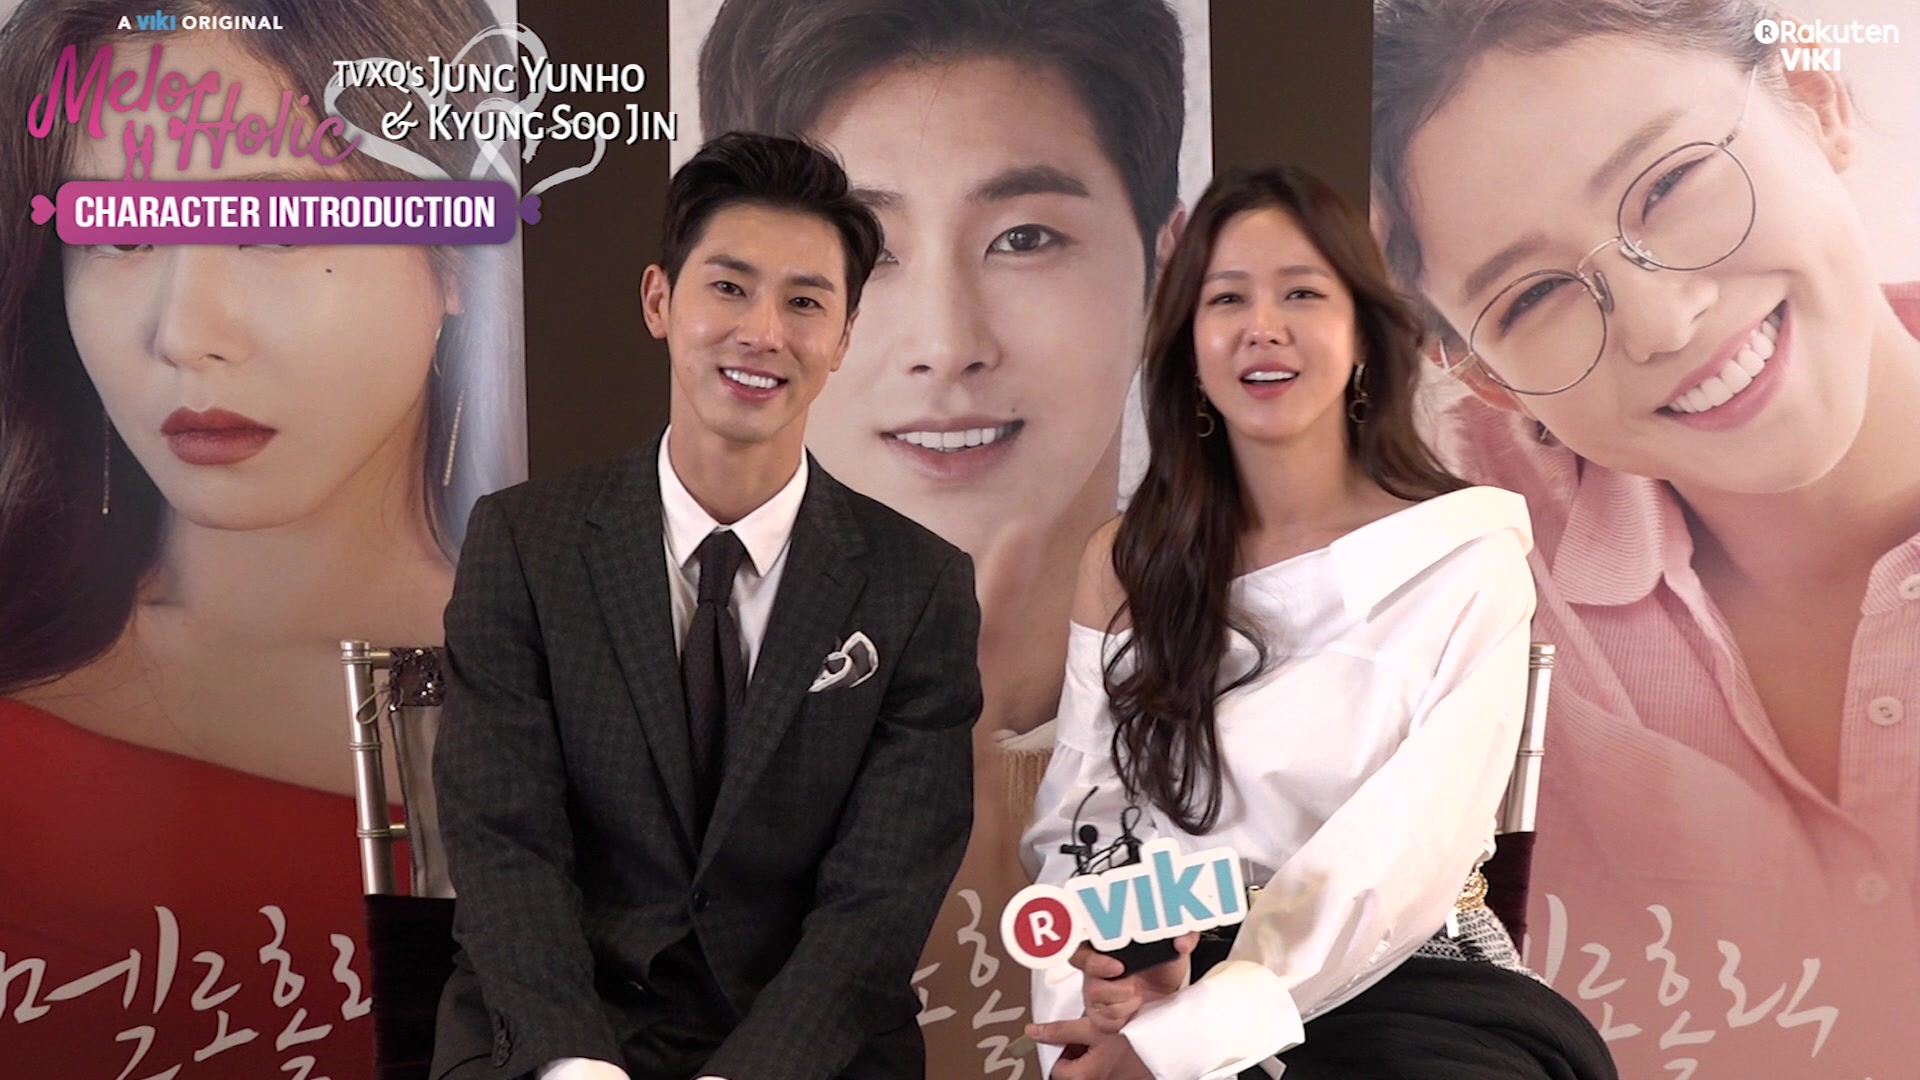 Exclusive Interview With Jung Yunho & Kyung Soo Jin: Melo Holic